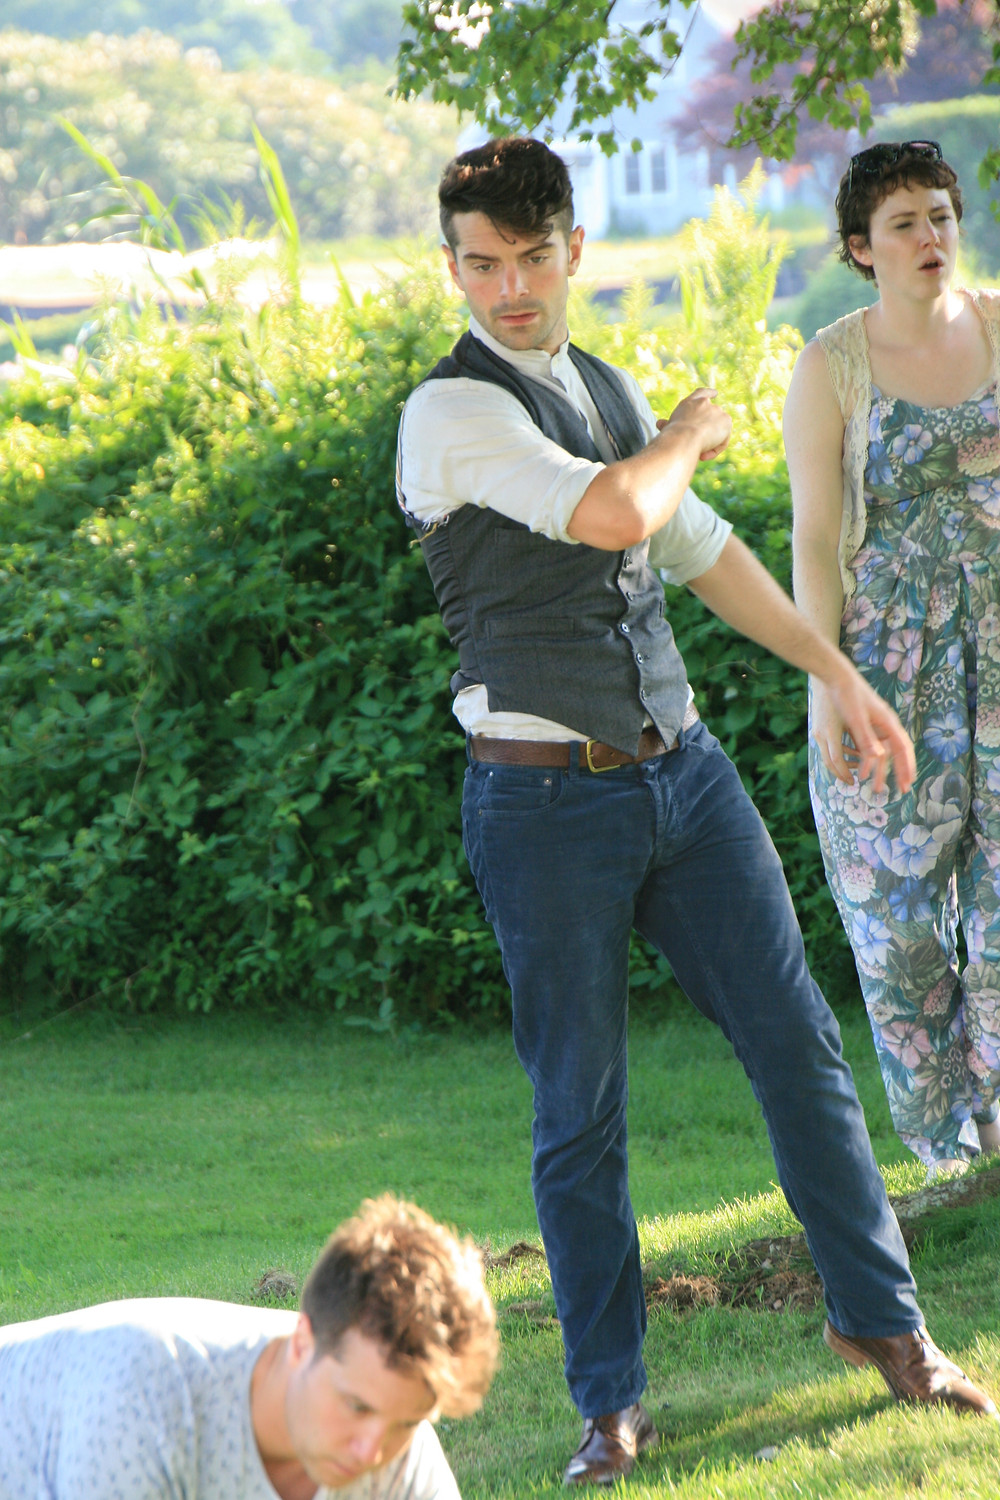 Actor ludovic hughes rehearsing a midsummer night's dream in a garden for revels in hand